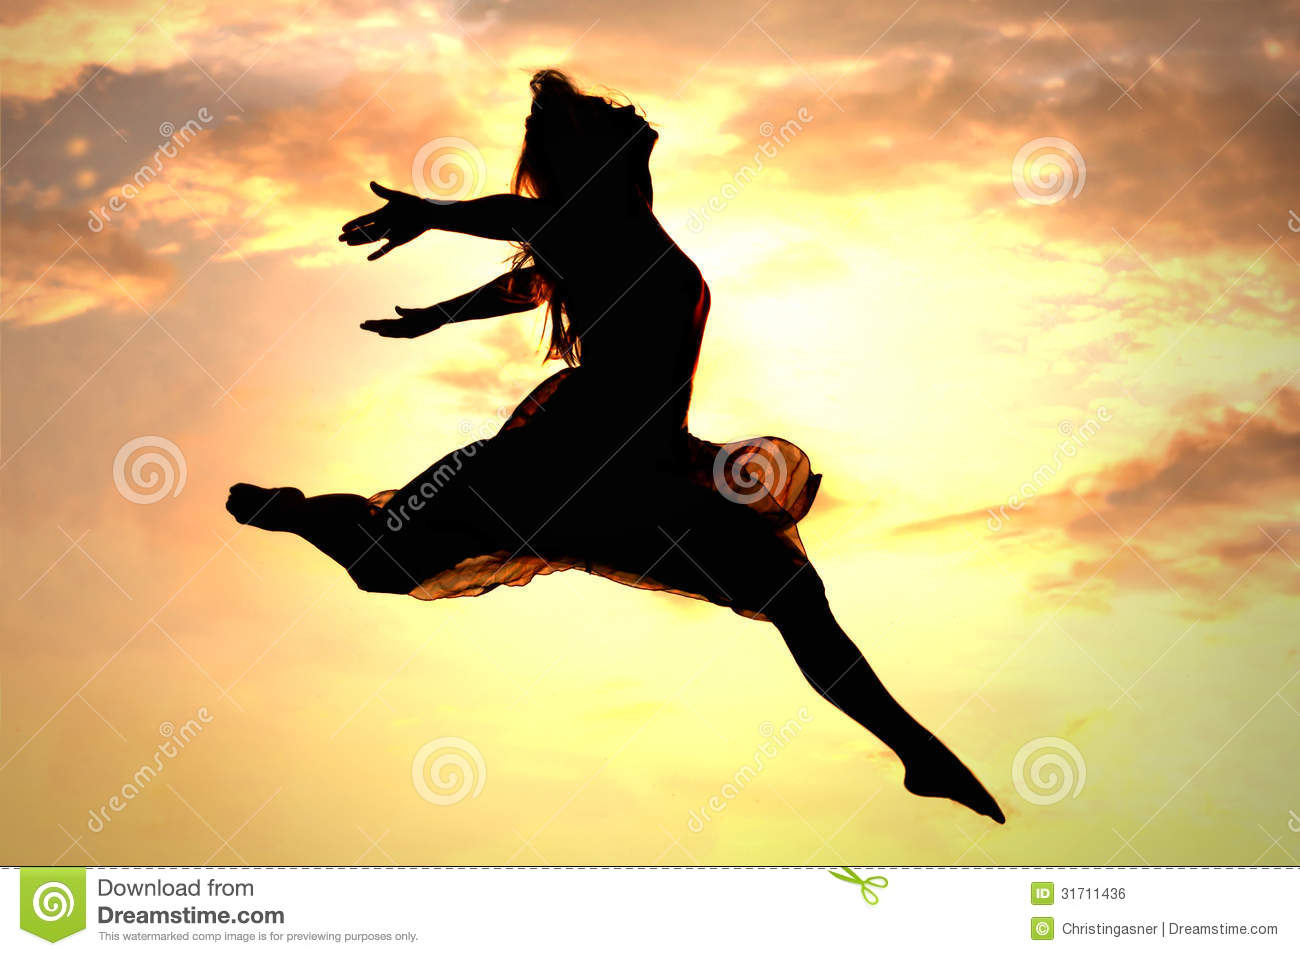 Woman Leaping - Shutterstock